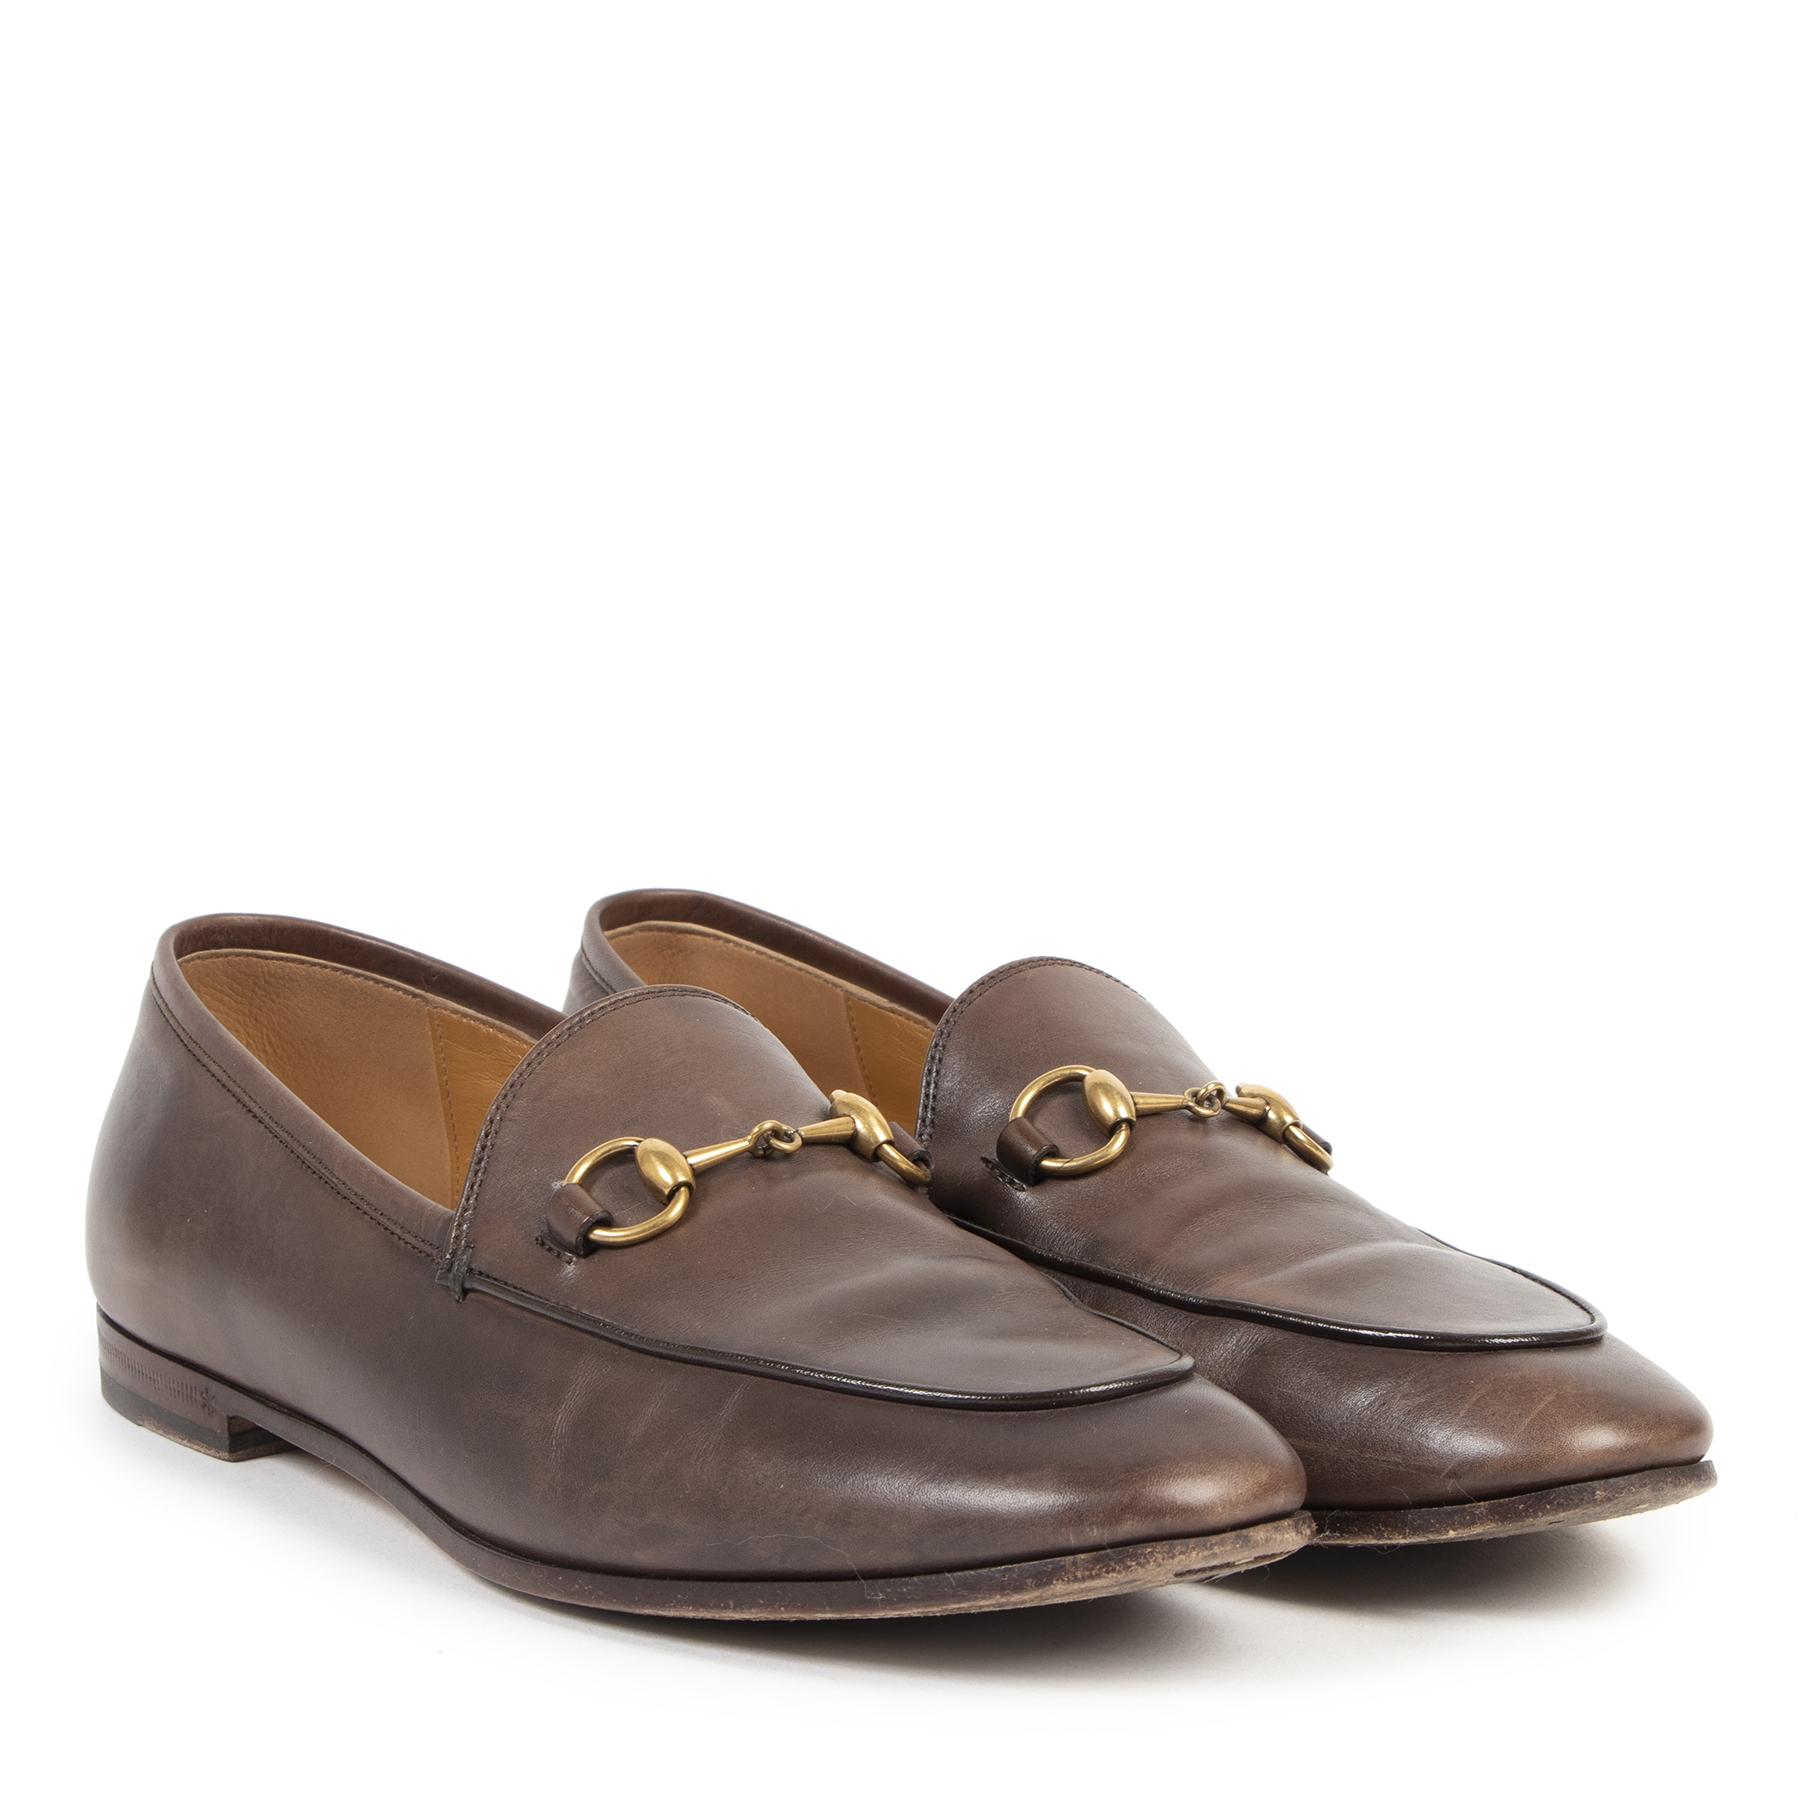 Authentic secondhand Gucci Brown Leather Horsebit Loafers - Size 37,5 designer shoes fashion luxury vintage webshop safe secure online shopping